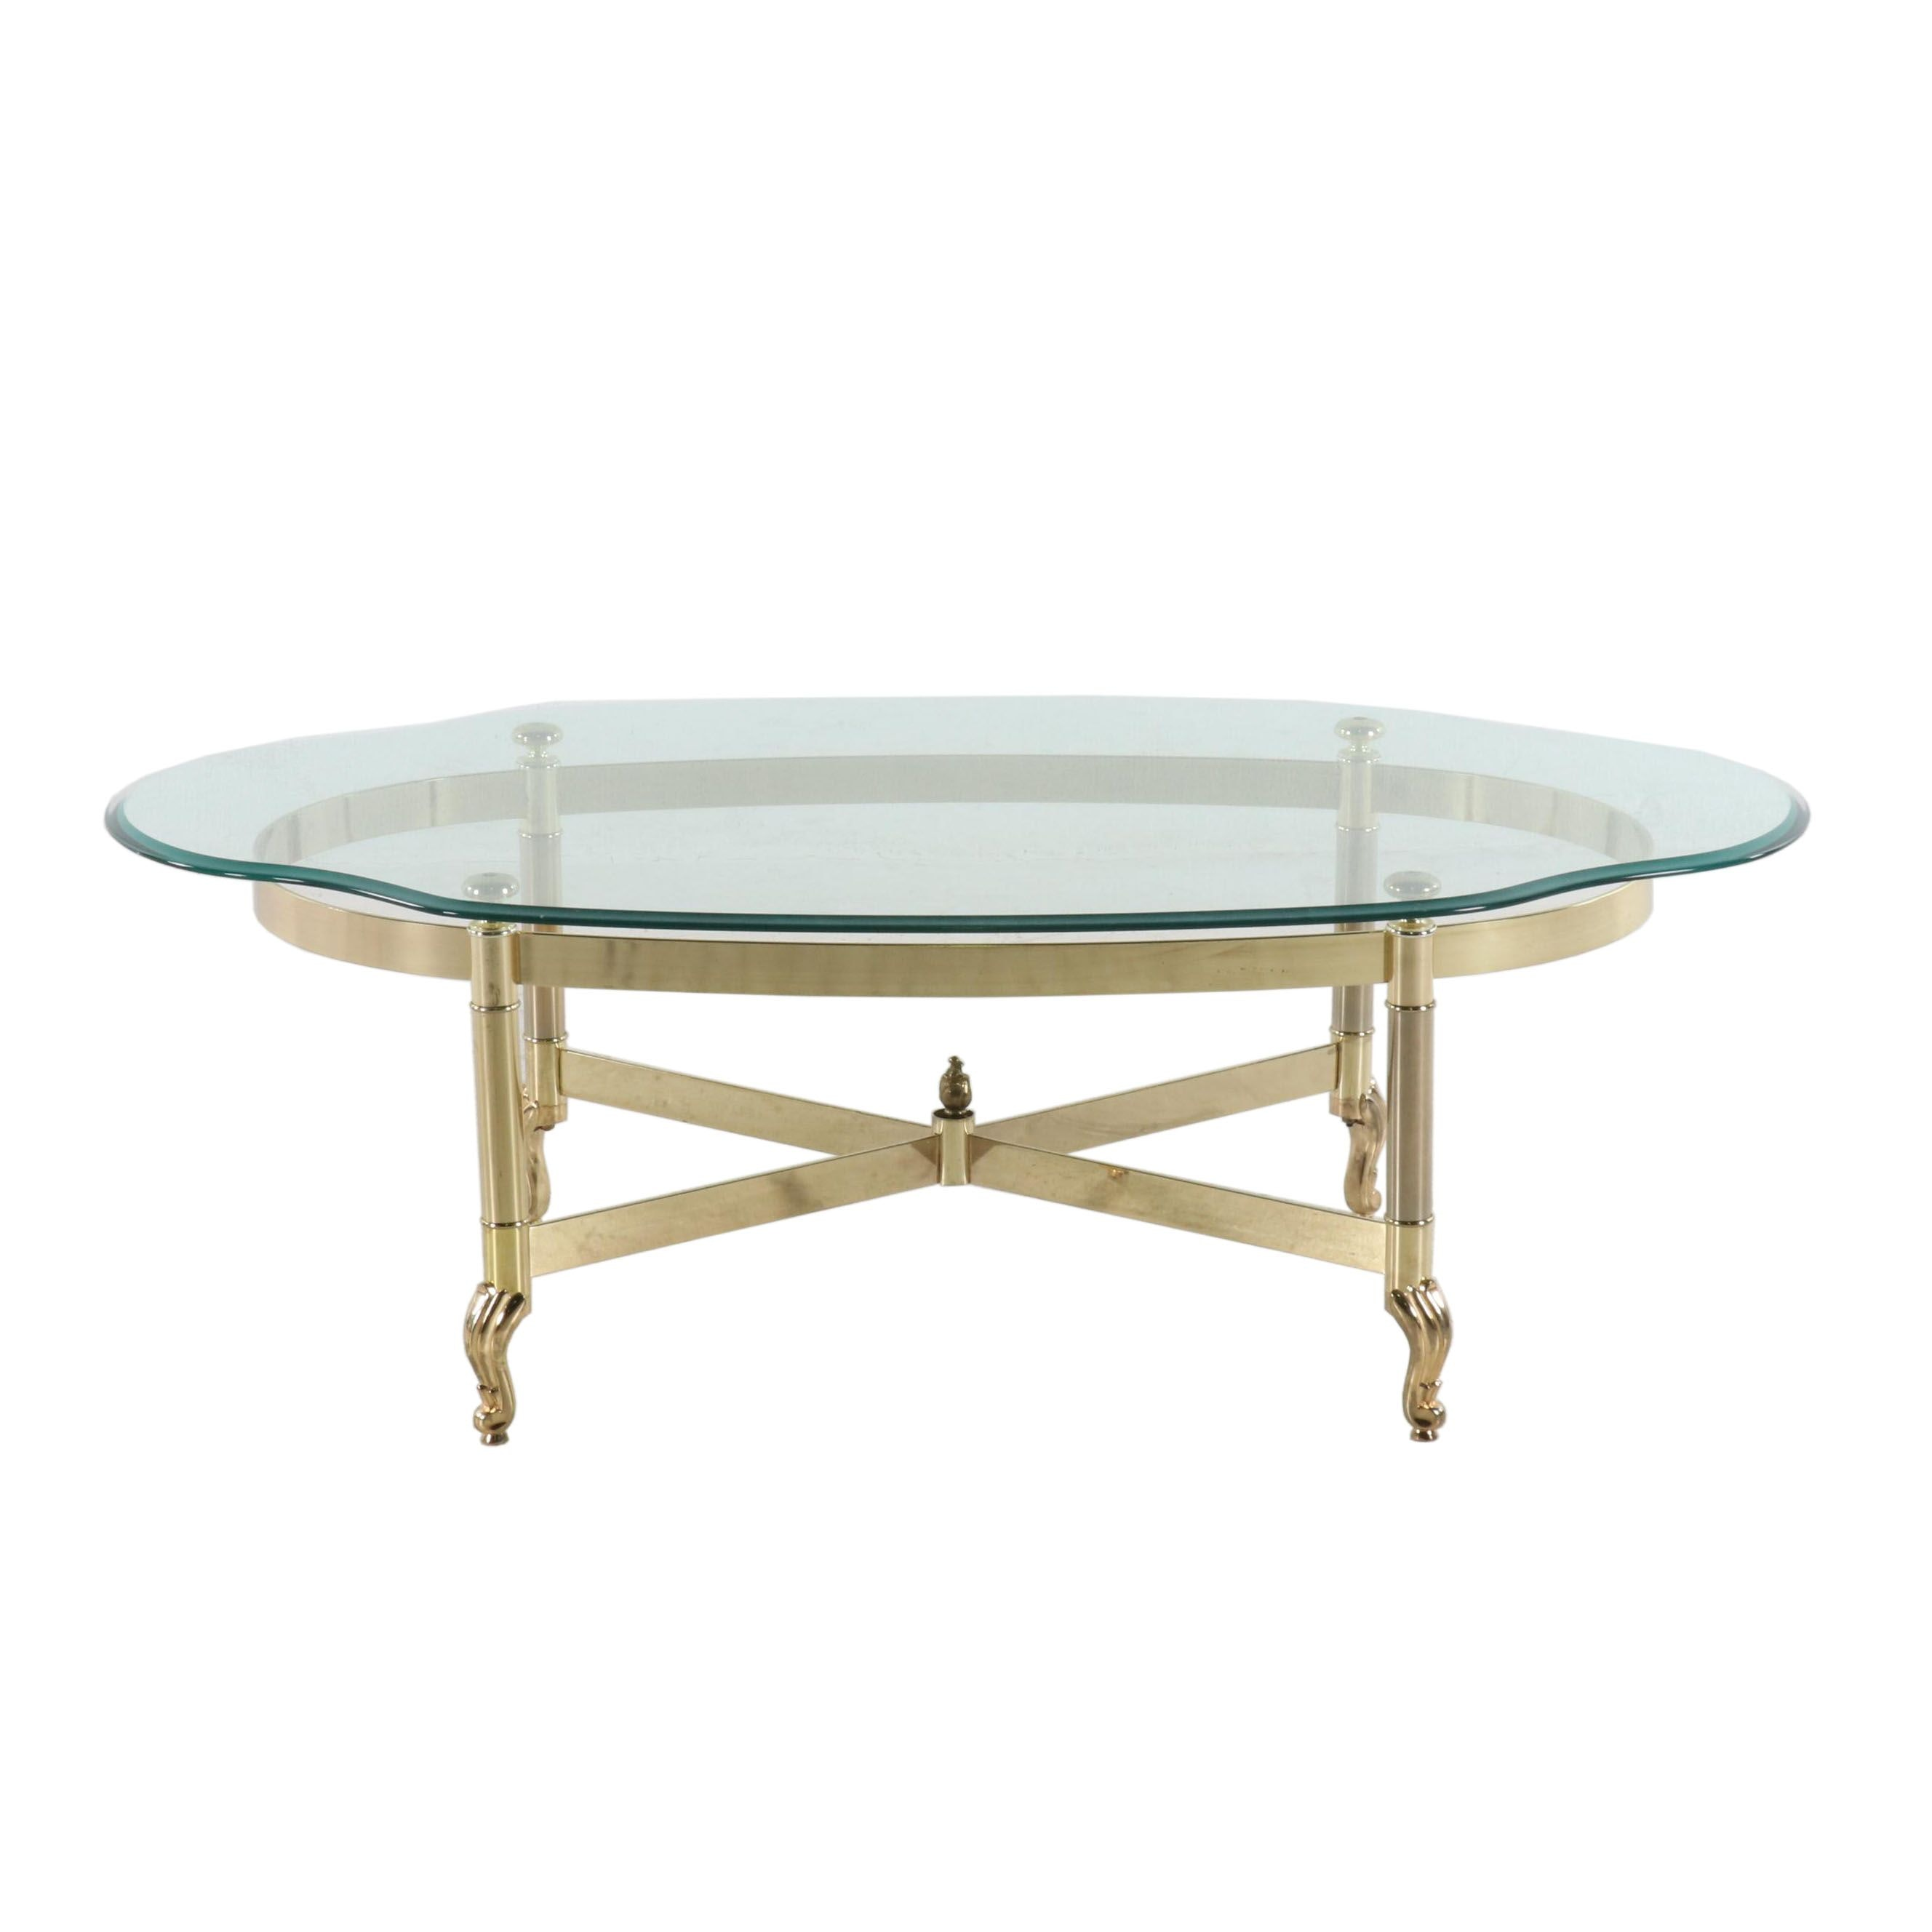 Transitional Brass And Glass Top Coffee Table, Late 20th Century